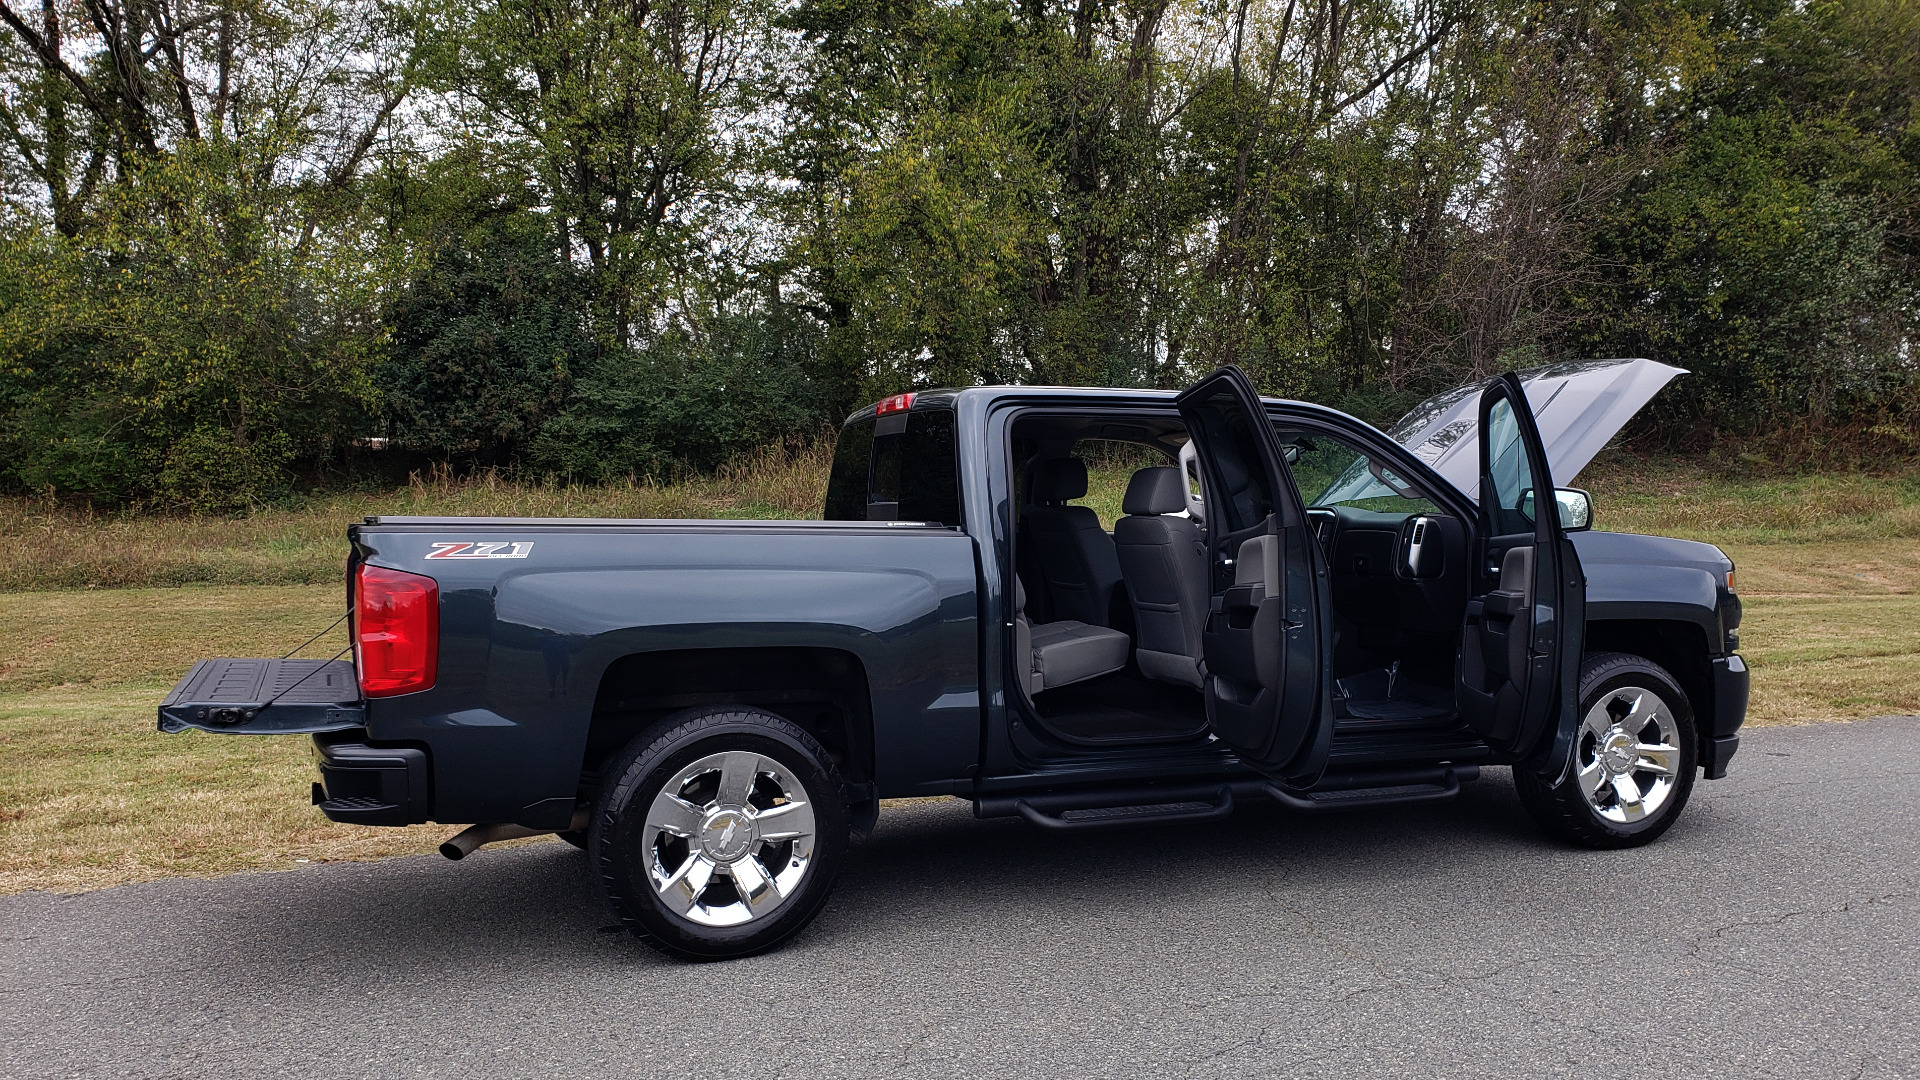 Used 2017 Chevrolet SILVERADO 1500 LTZ 4WD / NAV / BOSE / LEATHER / CAMERA / LOADED for sale Sold at Formula Imports in Charlotte NC 28227 32